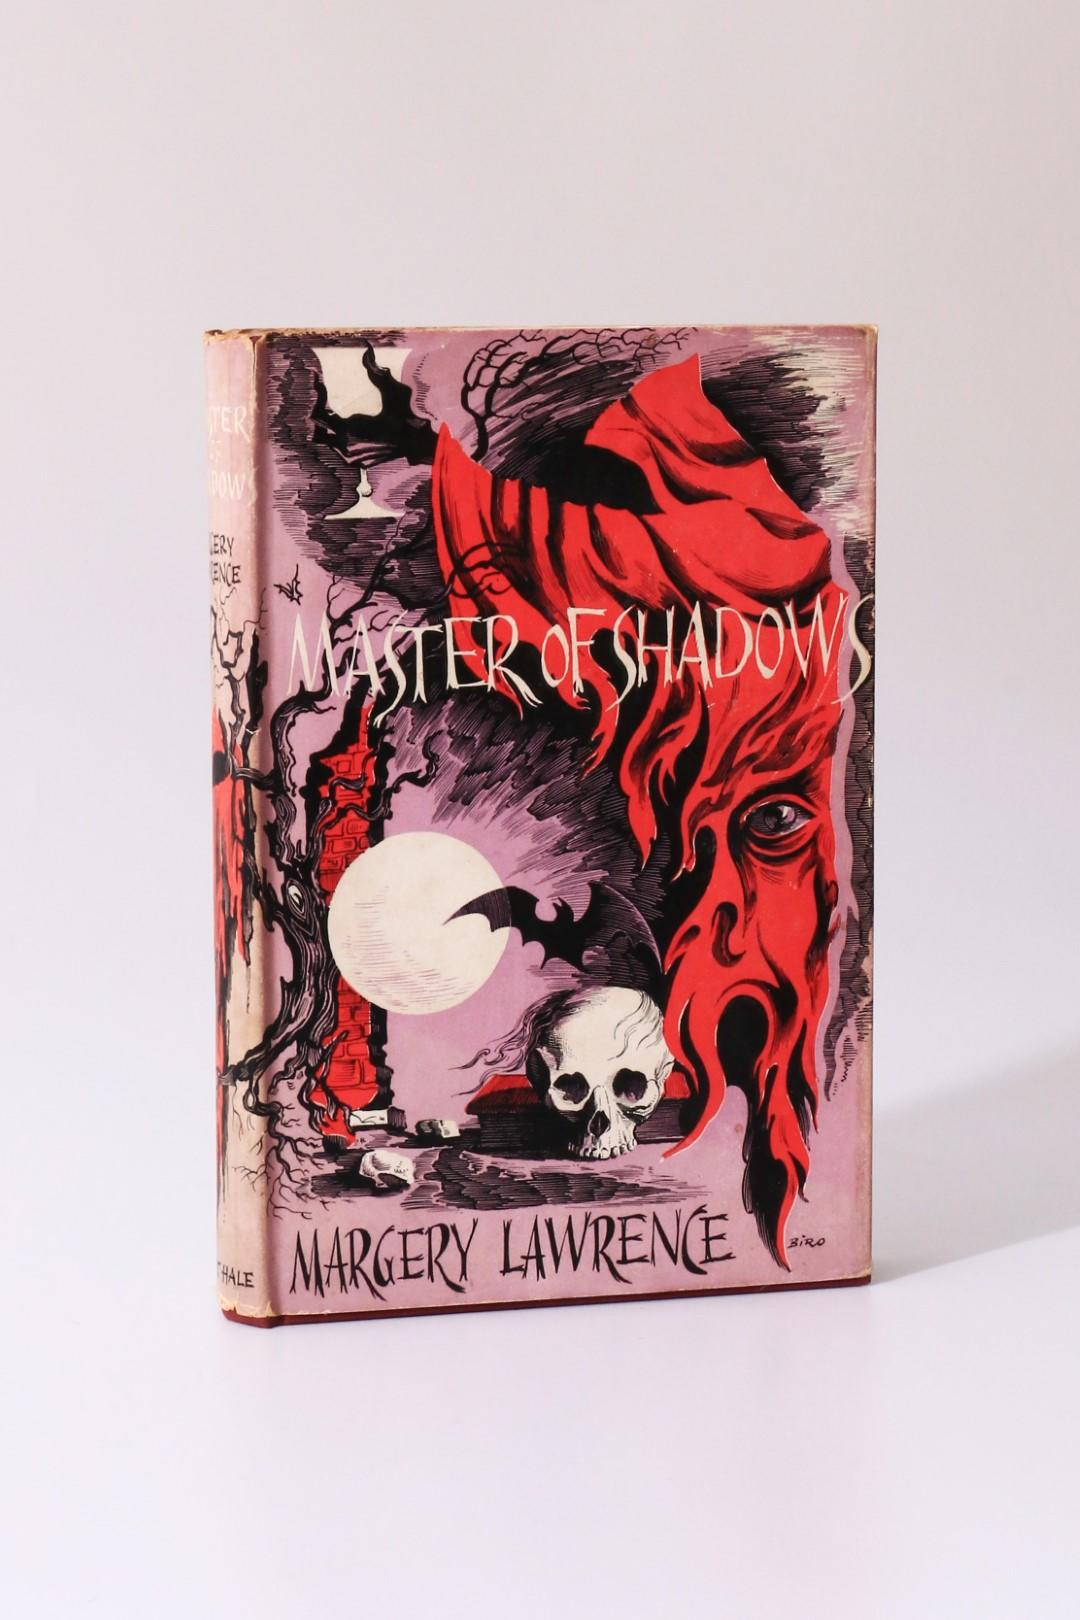 Margery Lawrence - Master of Shadow - Robert Hale, 1959, First Edition.